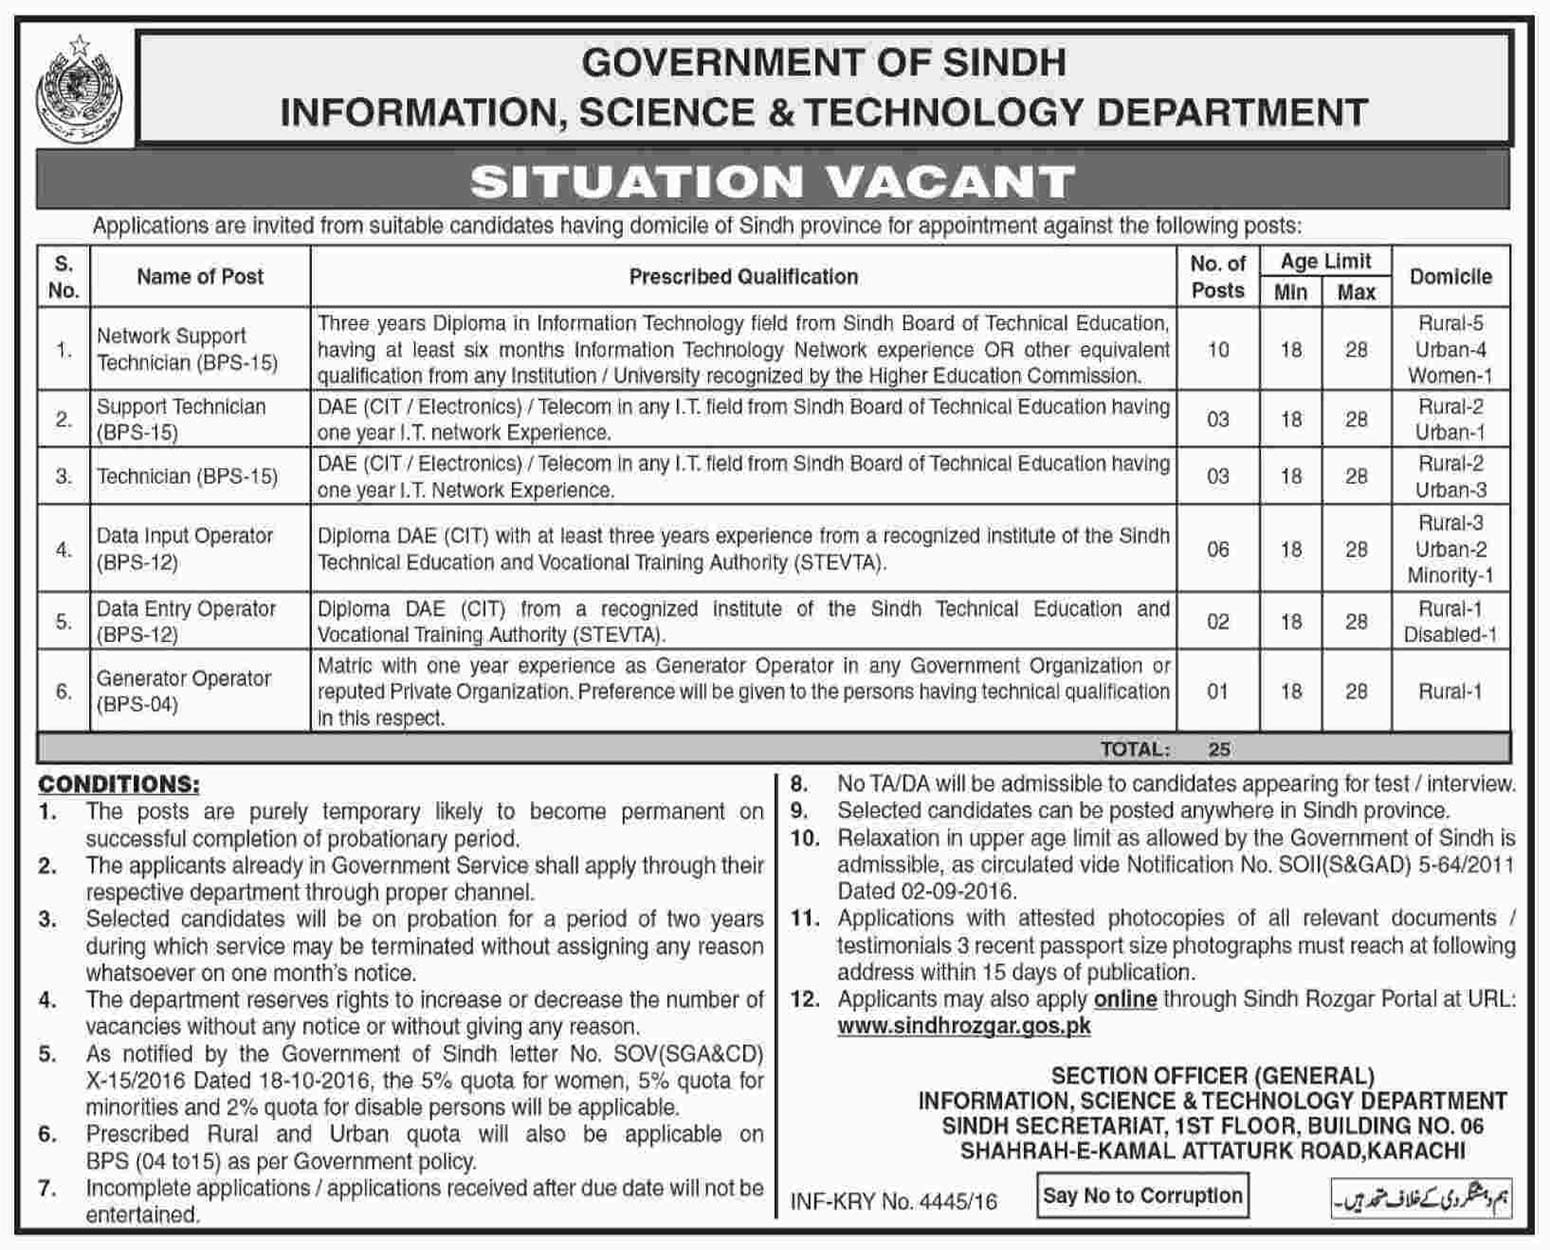 Govt Sindh  Information Science and Technology Department Jobs